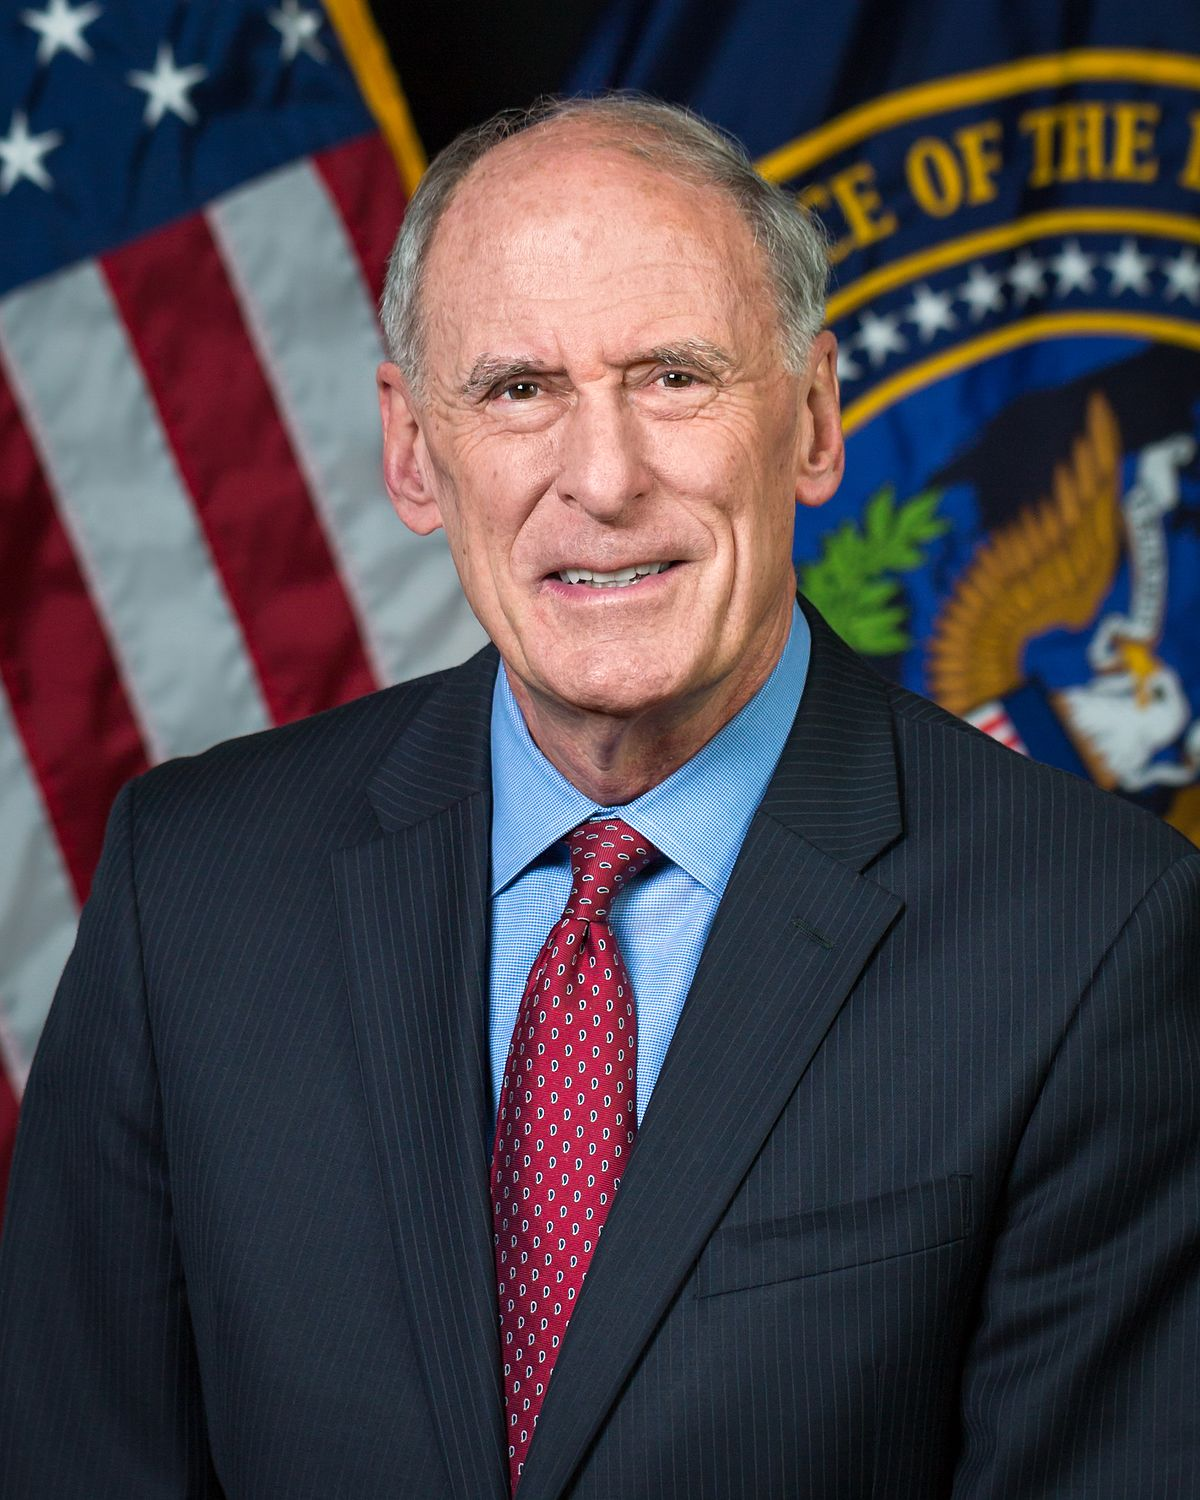 Dan Coats Out As Director of National Intelligence